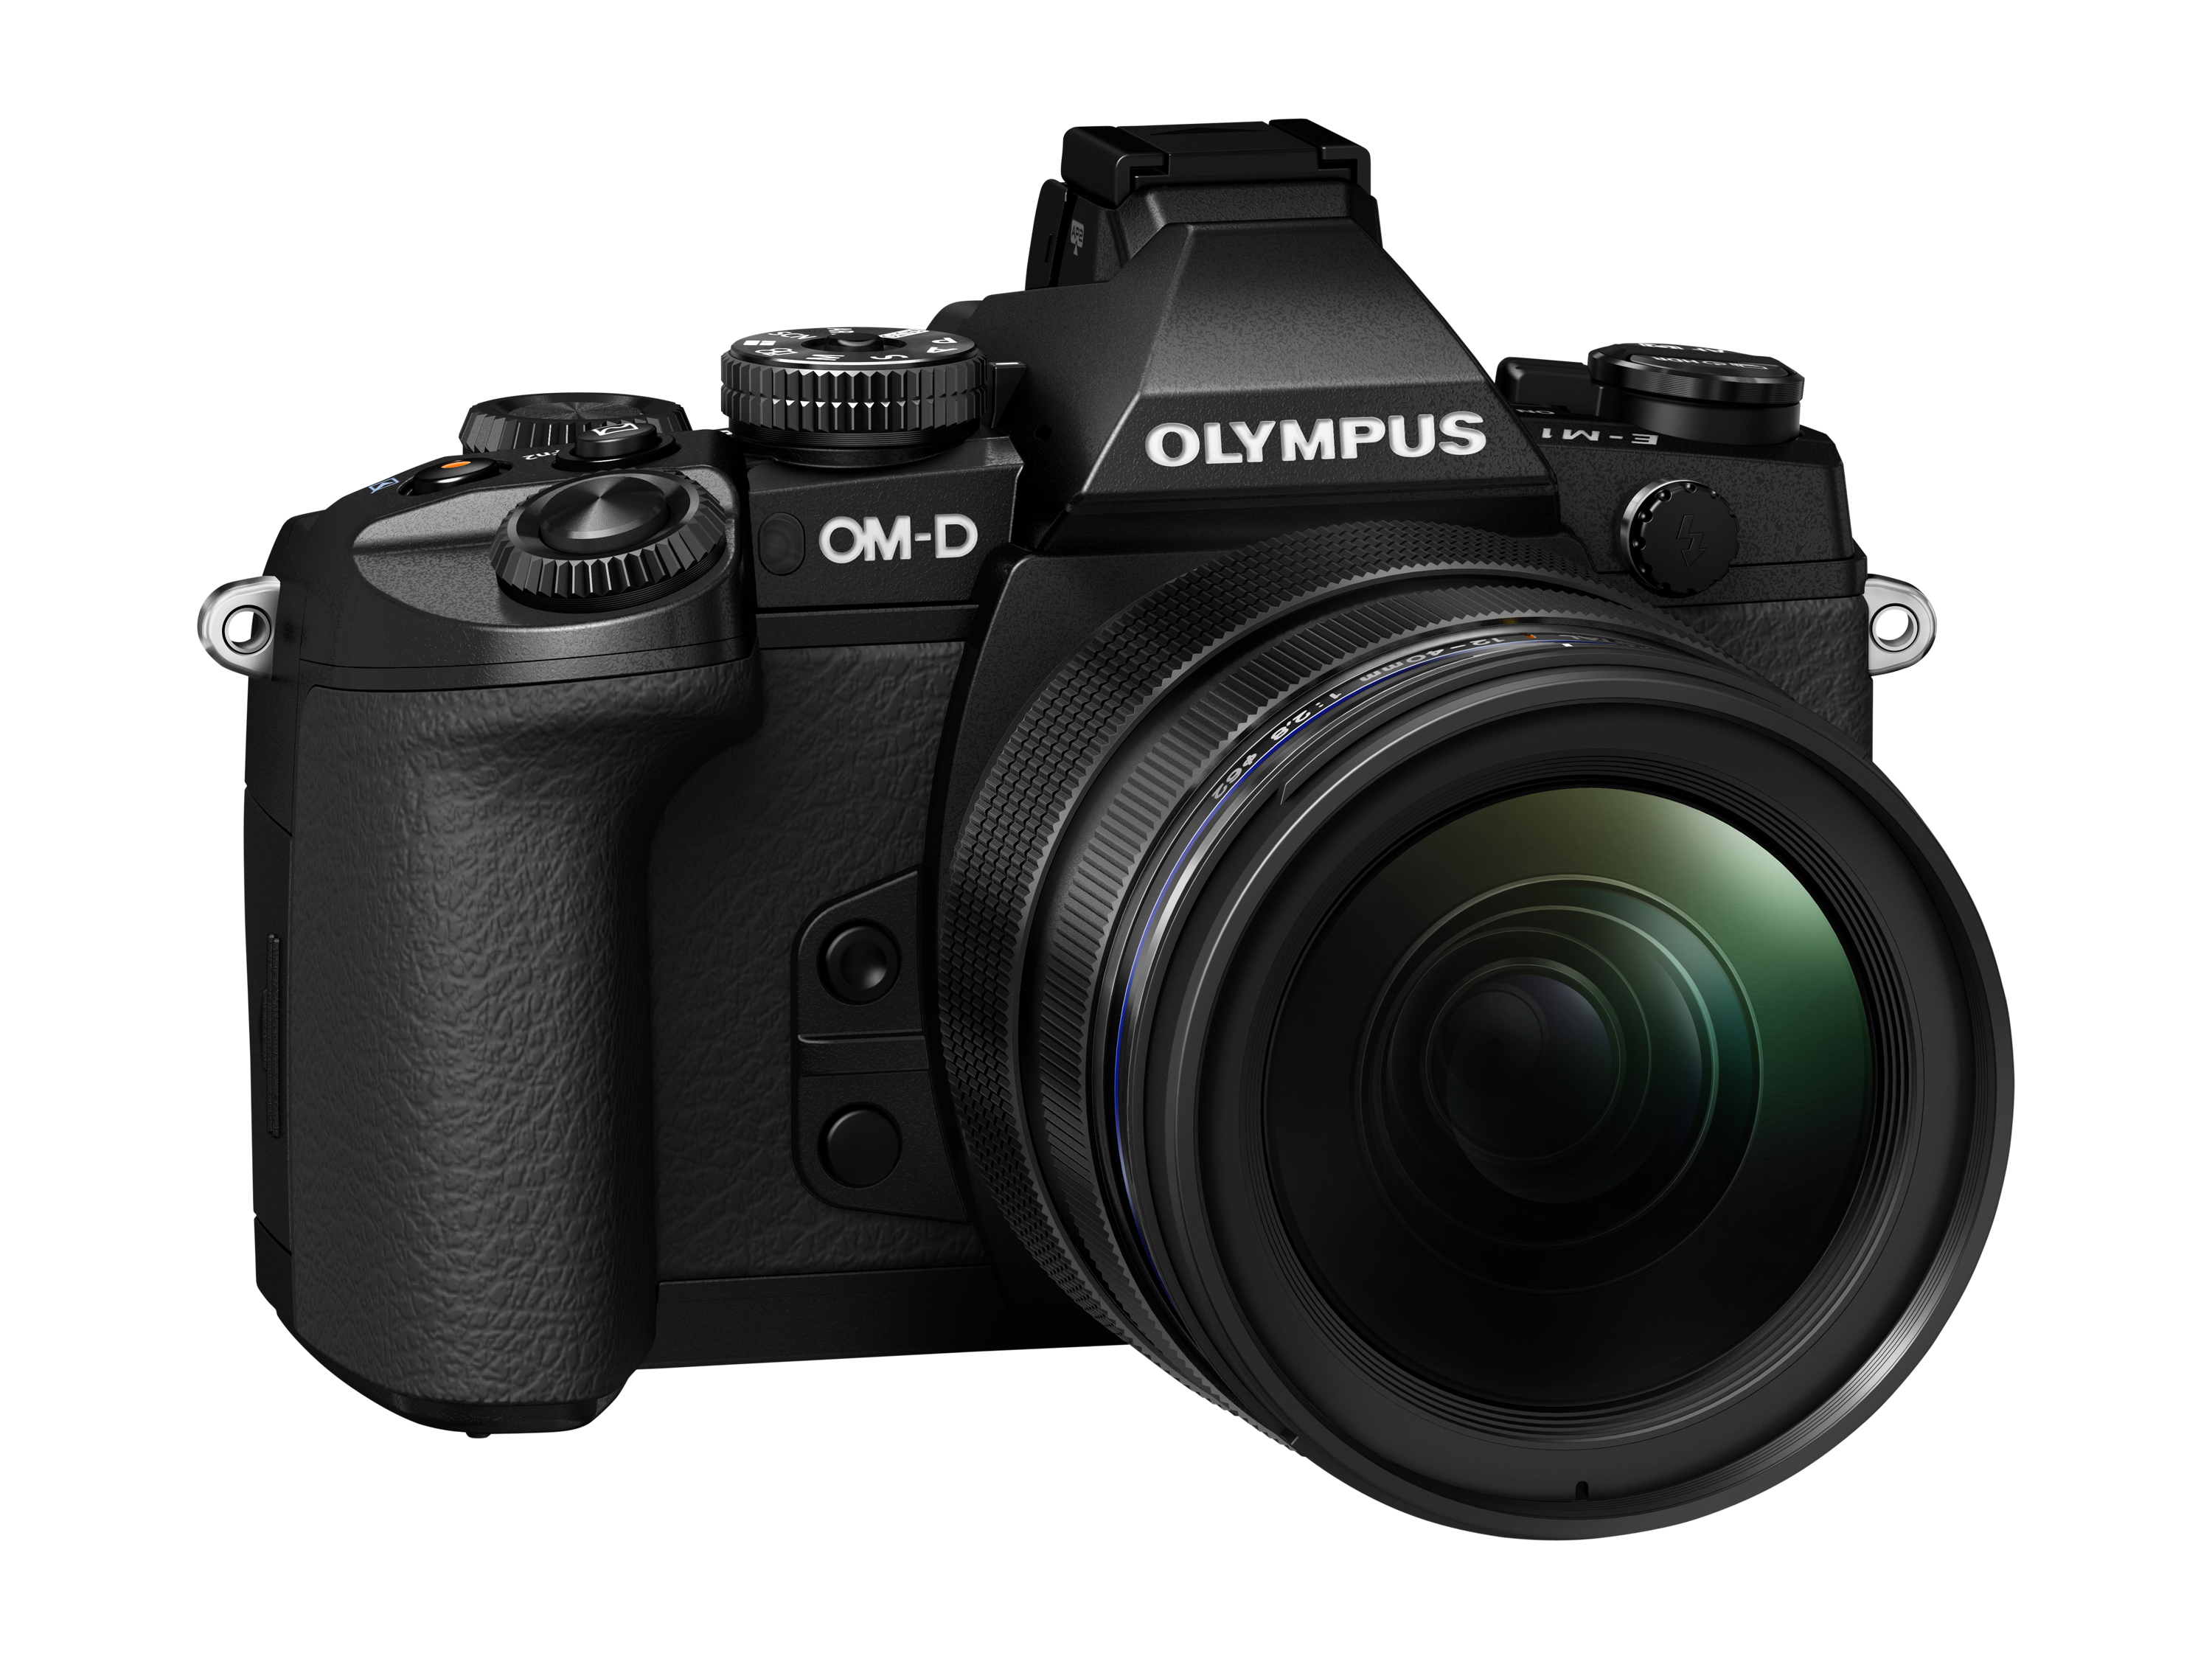 http://www.olympus.ua/corporate/rmt/media/corporate_1/press_images/imaging/33_om_d_e_m1/OM-D_E-M1__Product_000_063.jpg